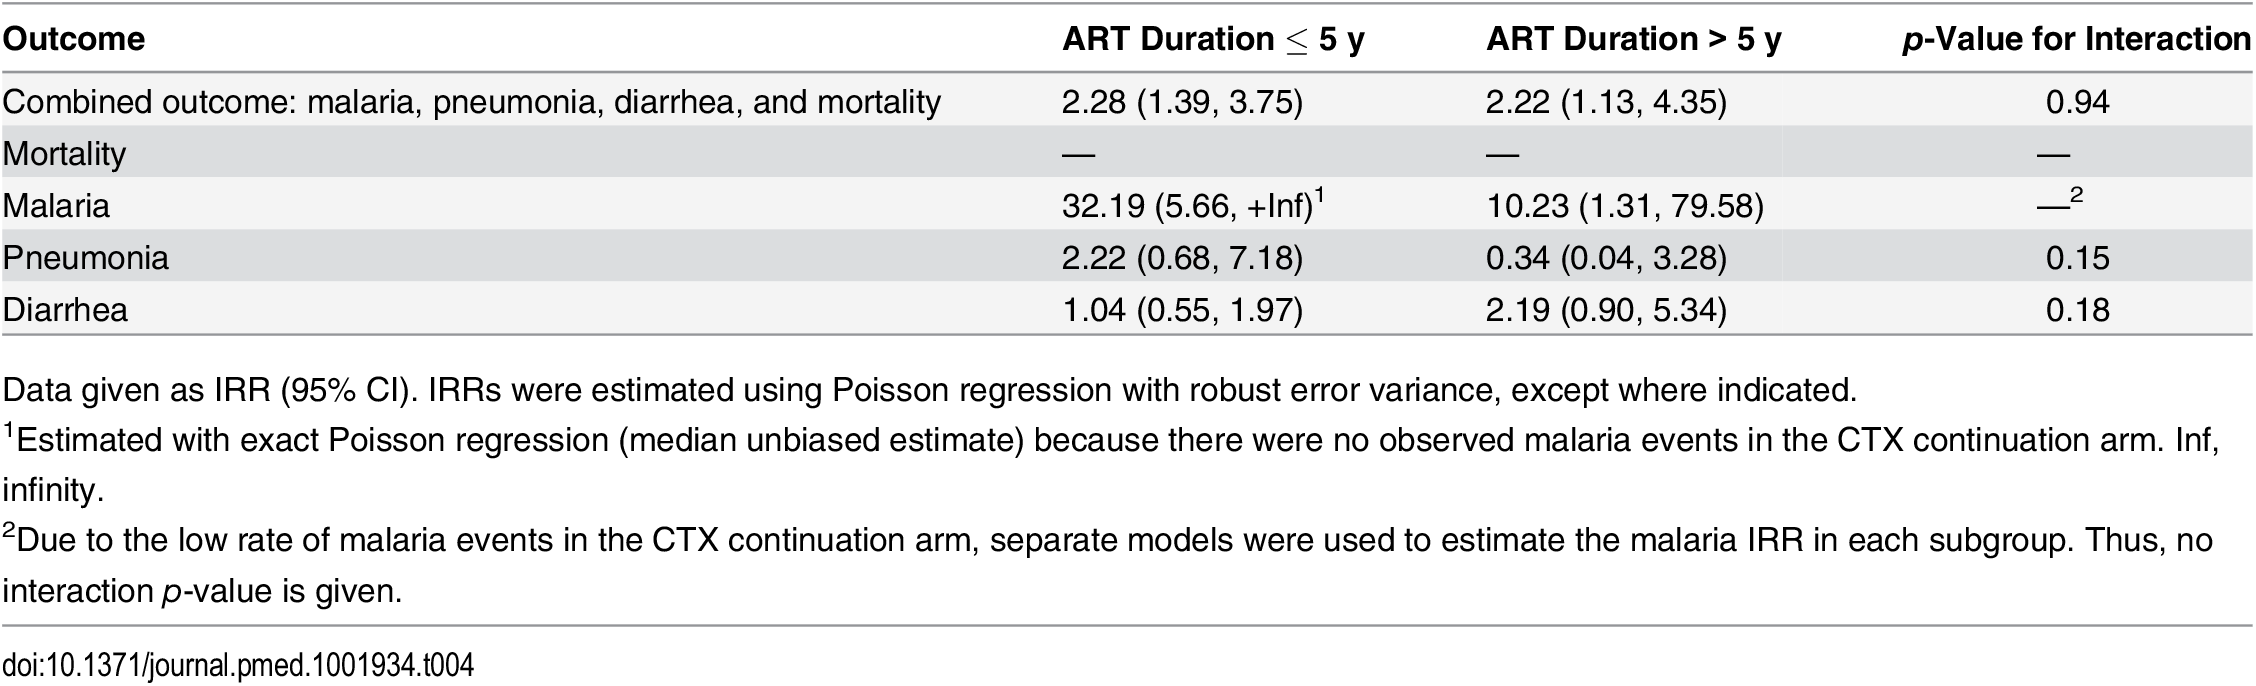 Subgroup analyses by ART duration: comparing CTX discontinuation to CTX continuation arms.